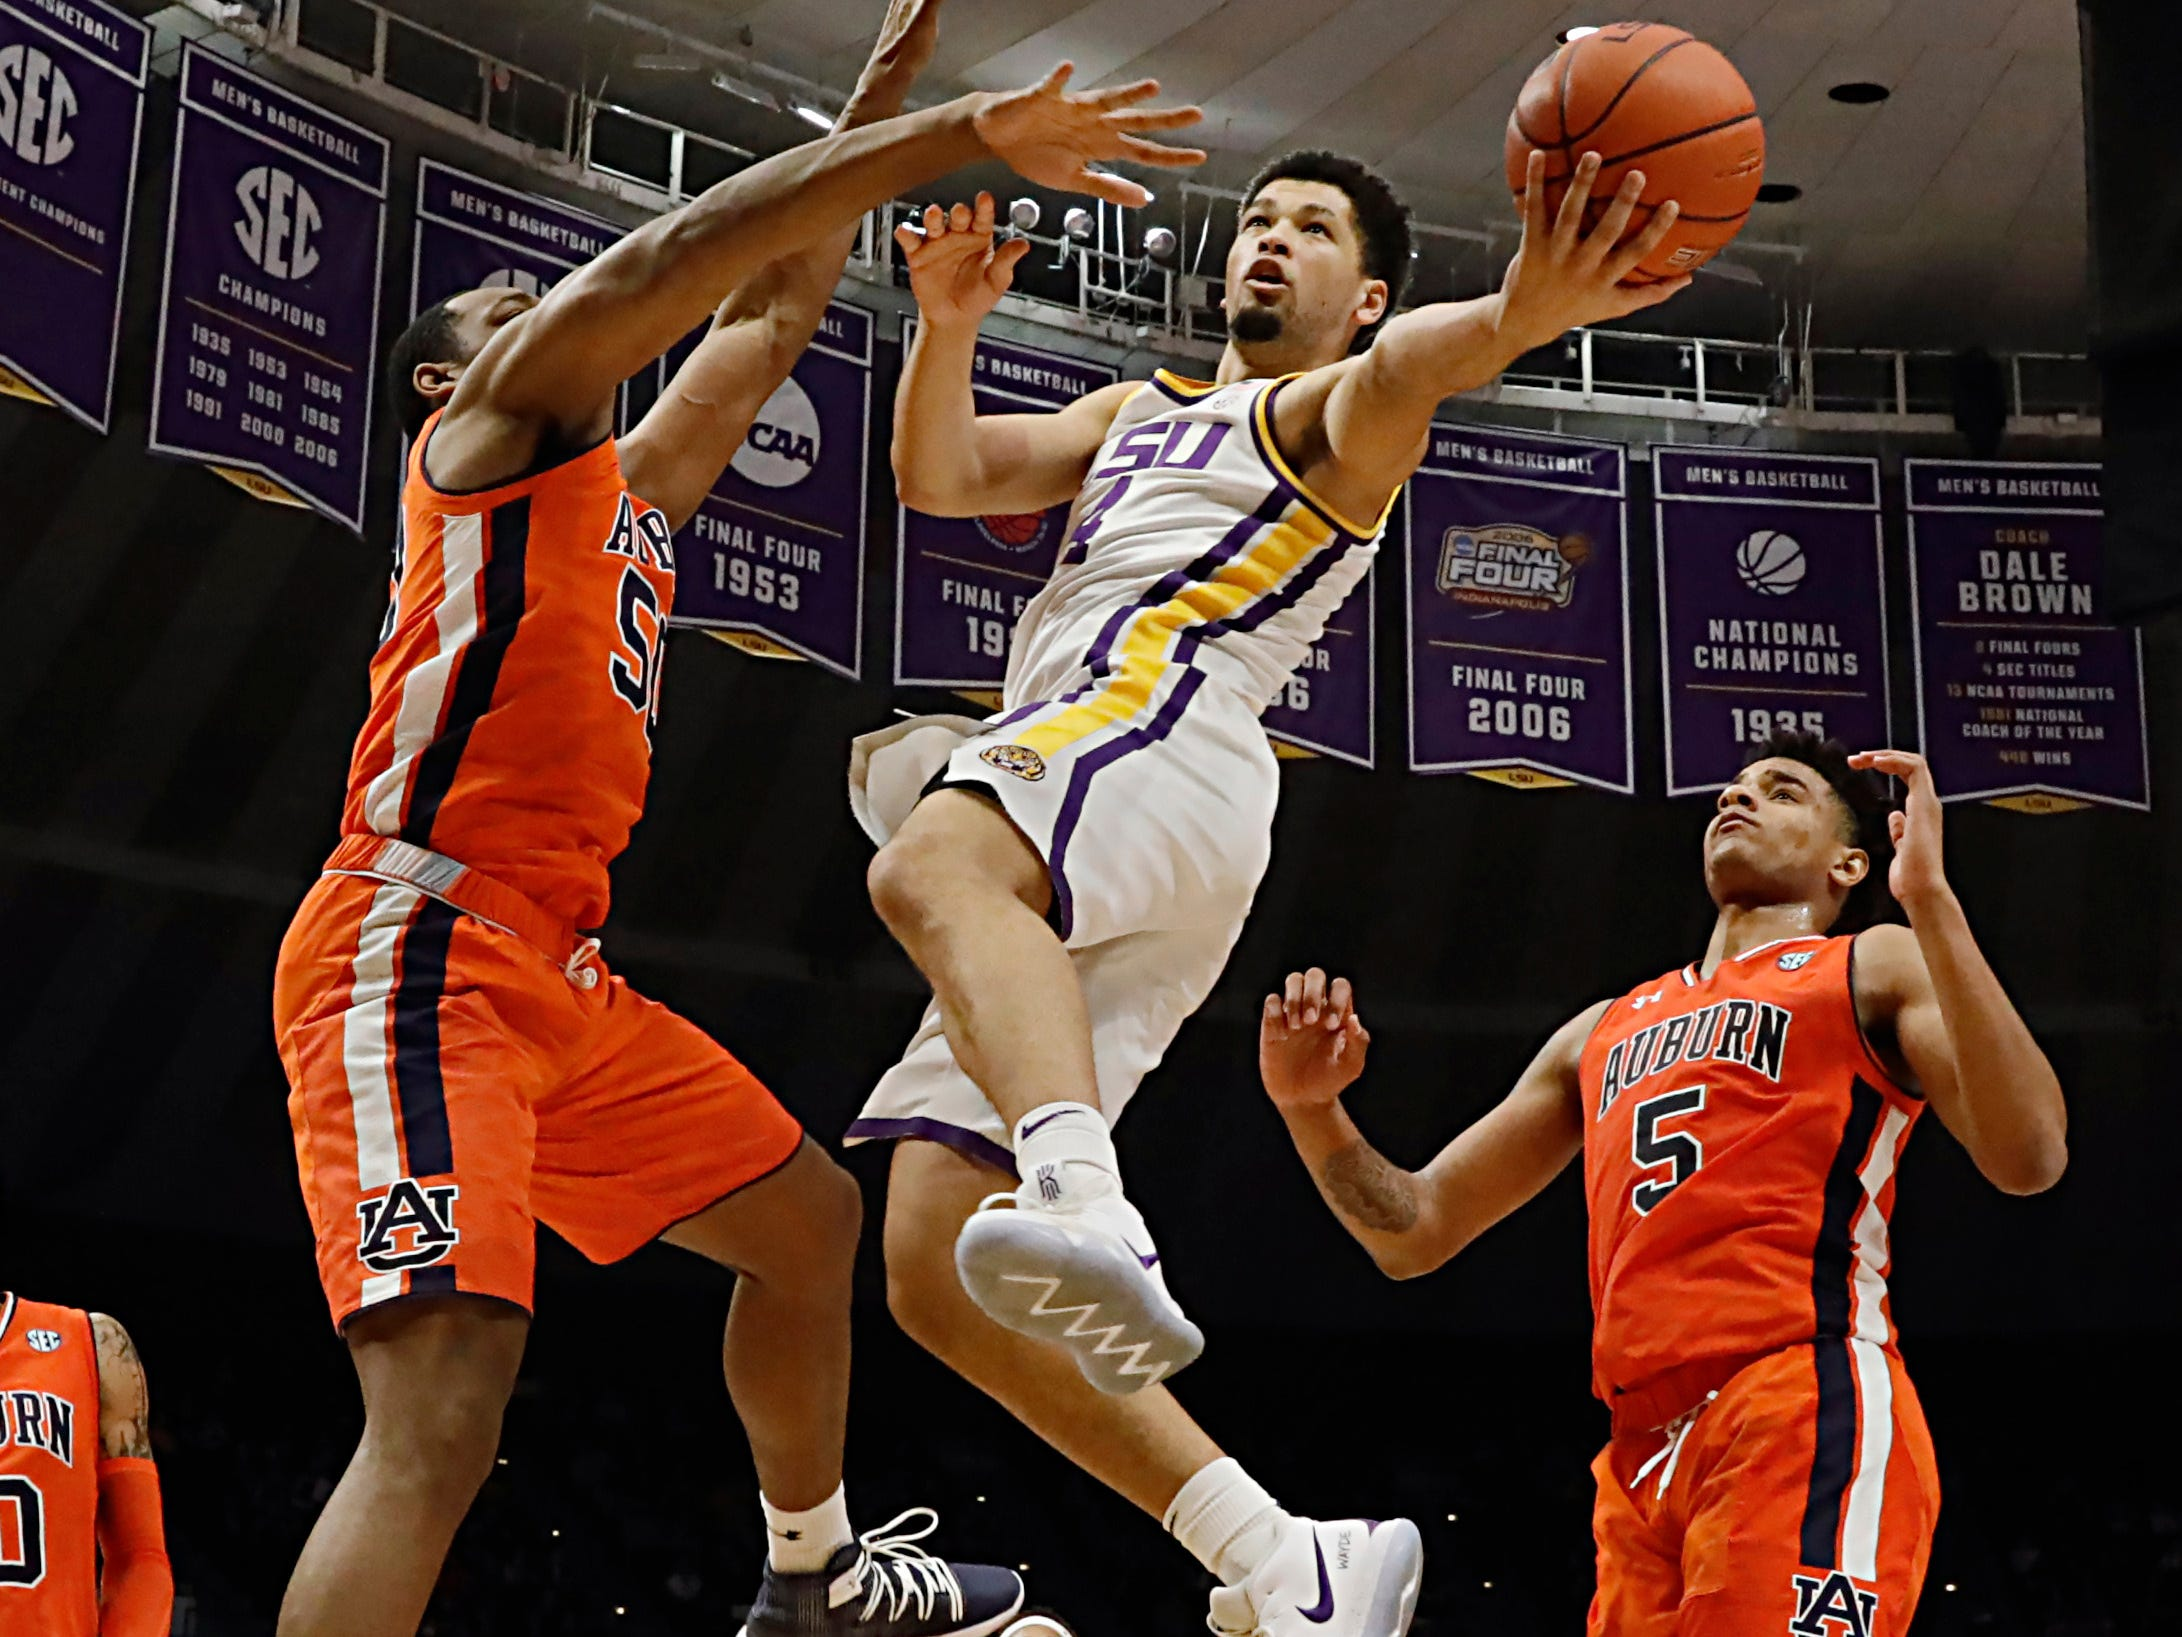 Feb 9, 2019; Baton Rouge, LA, USA; LSU Tigers guard Skylar Mays (4) drives to the basket against Auburn Tigers center Austin Wiley (50) in the second half at Maravich Assembly Center. Mandatory Credit: Stephen Lew-USA TODAY Sports